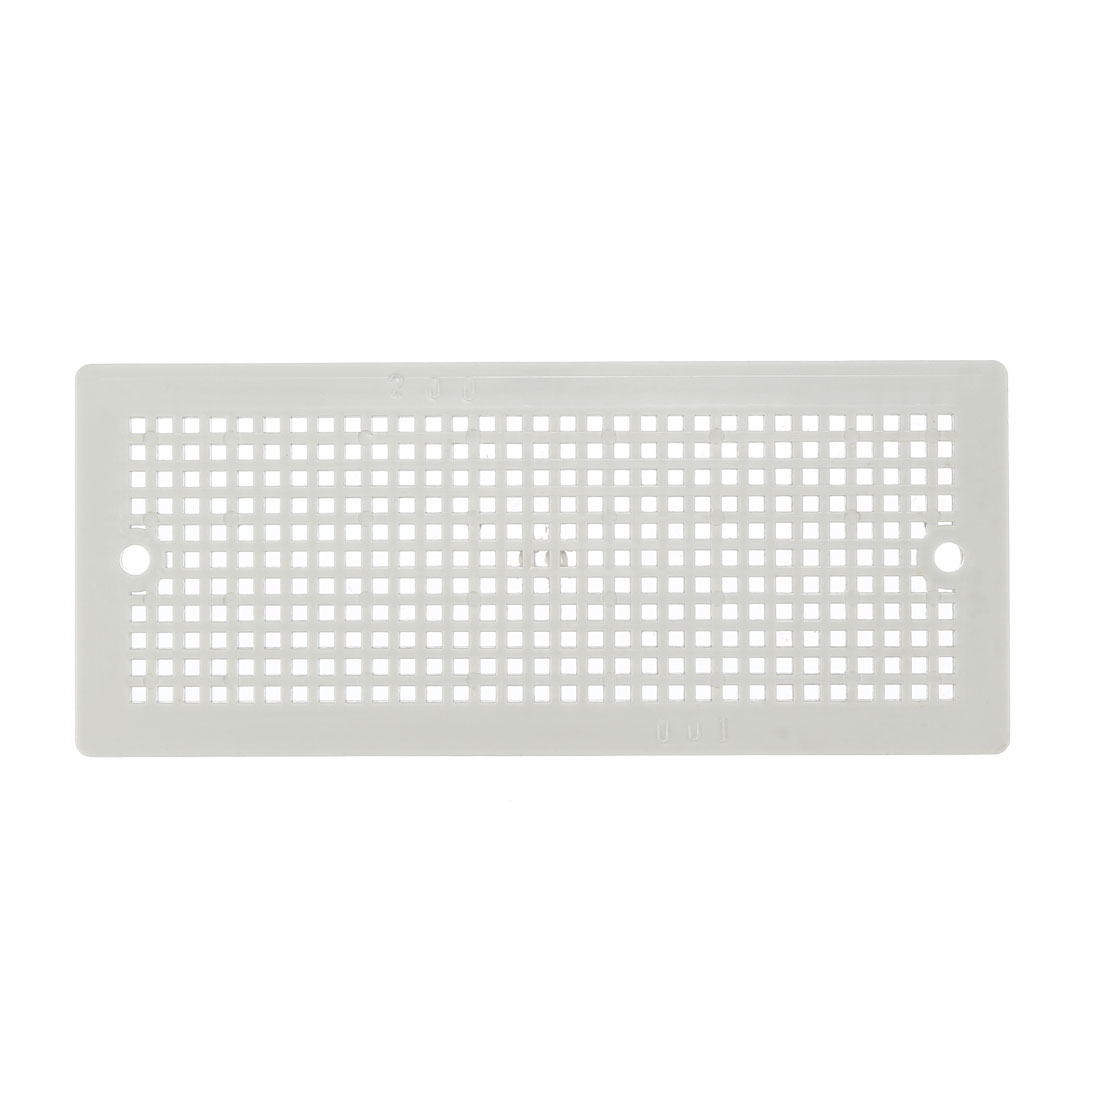 ABS Plastic Internal Panel Suitable for 200mm x 100mm Electrical Junction Box